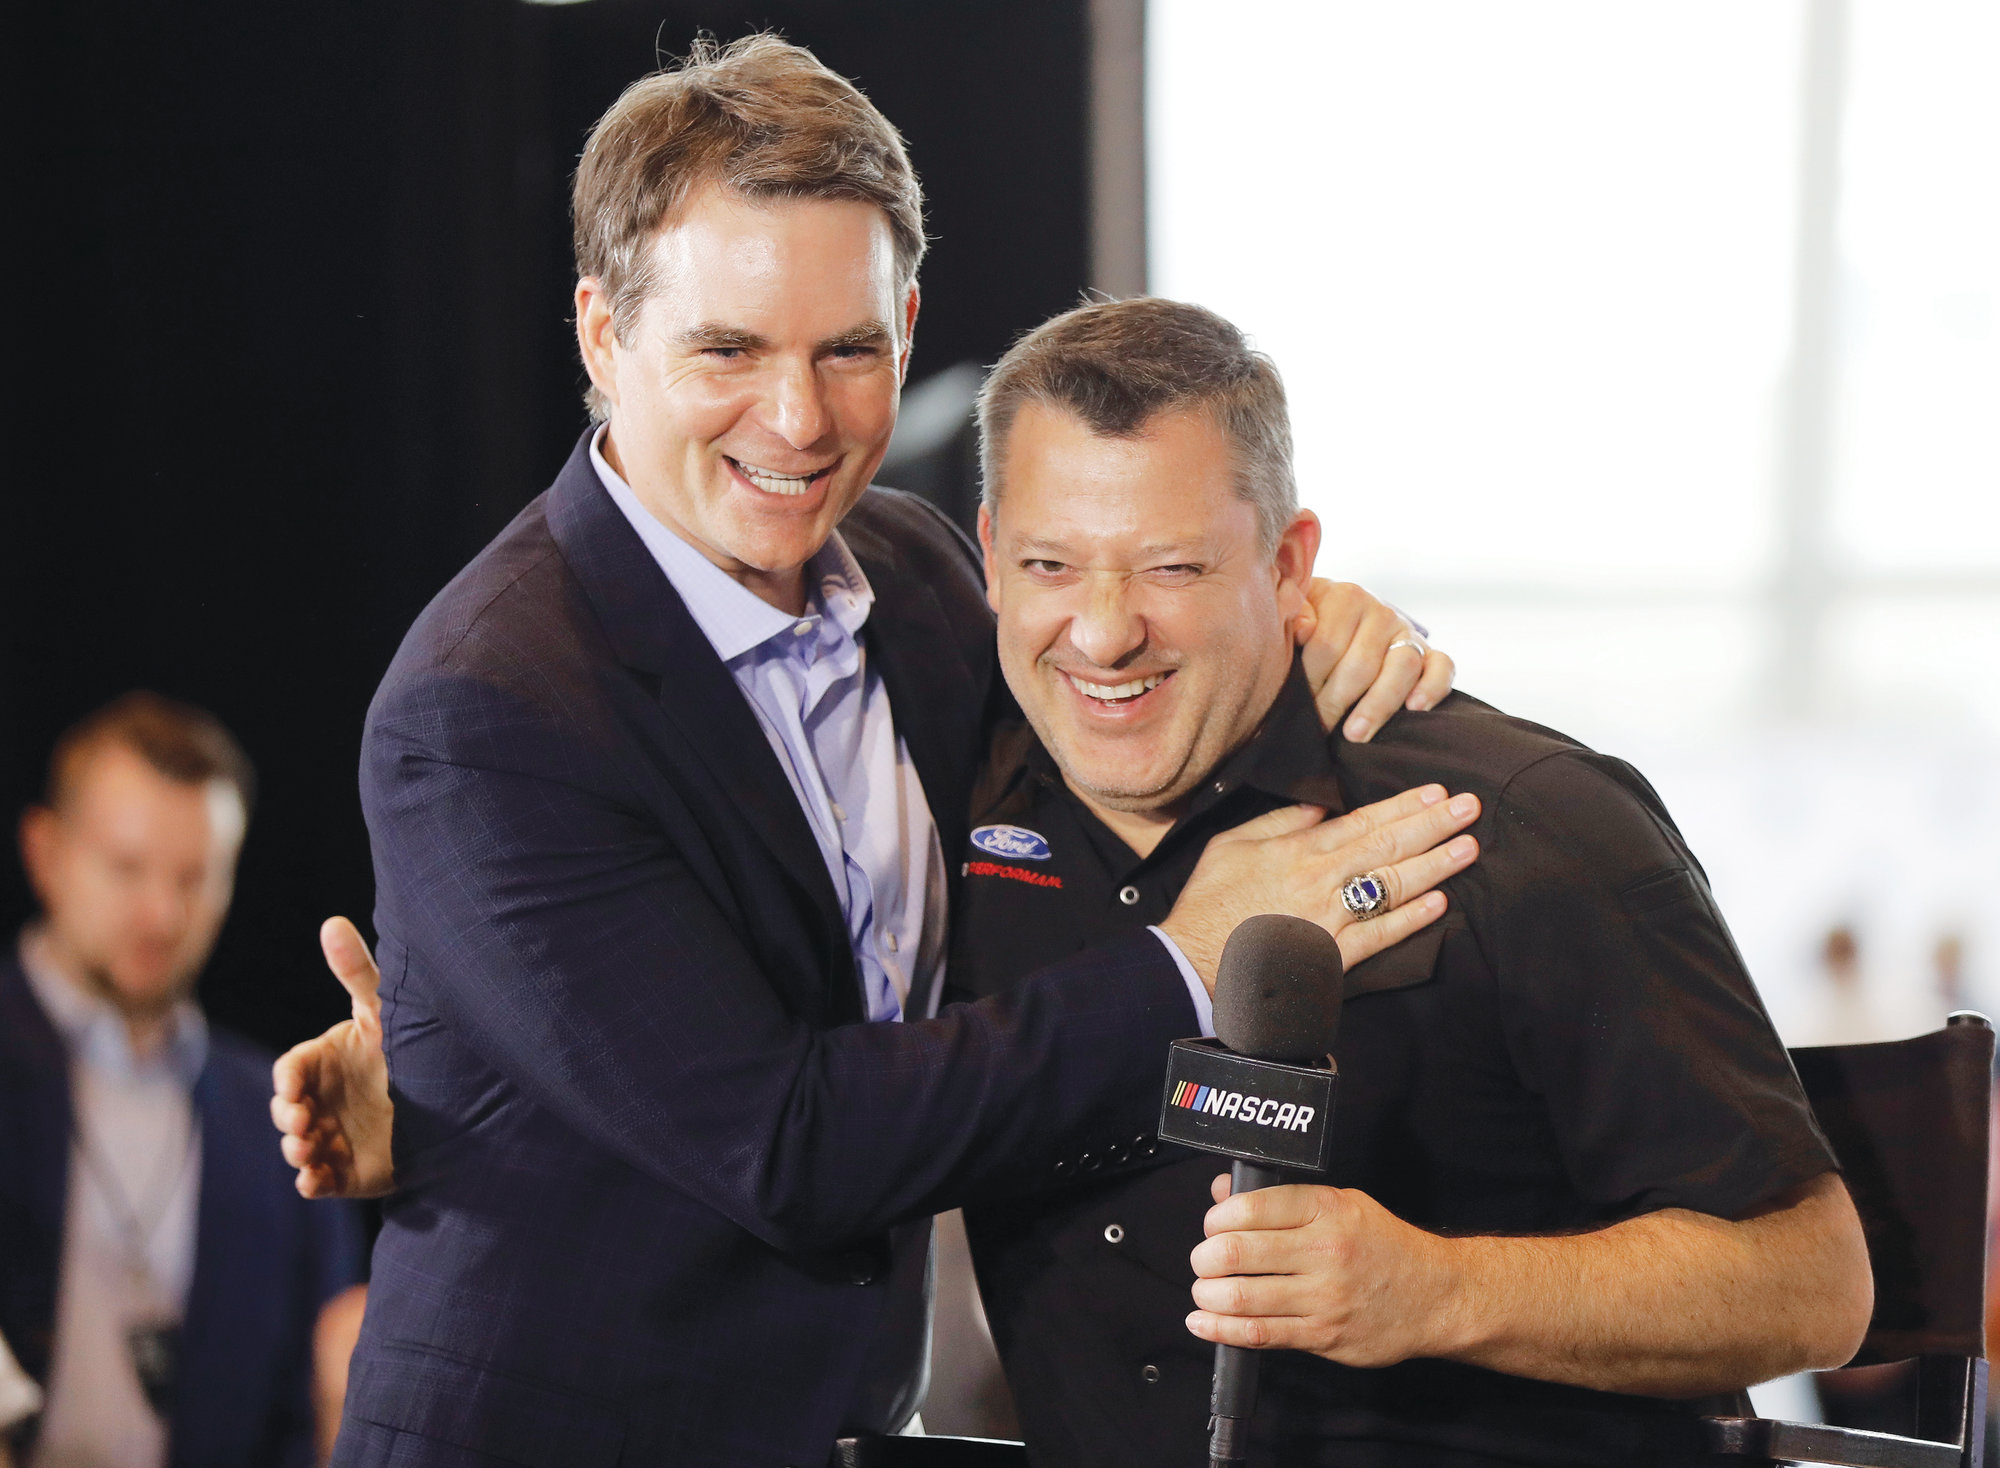 Tony Stewart, right, is congratulated by Jeff Gordon after being named to the NASCAR Hall of Fame class of 2020 during an announcement in Charlotte on Wednesday.